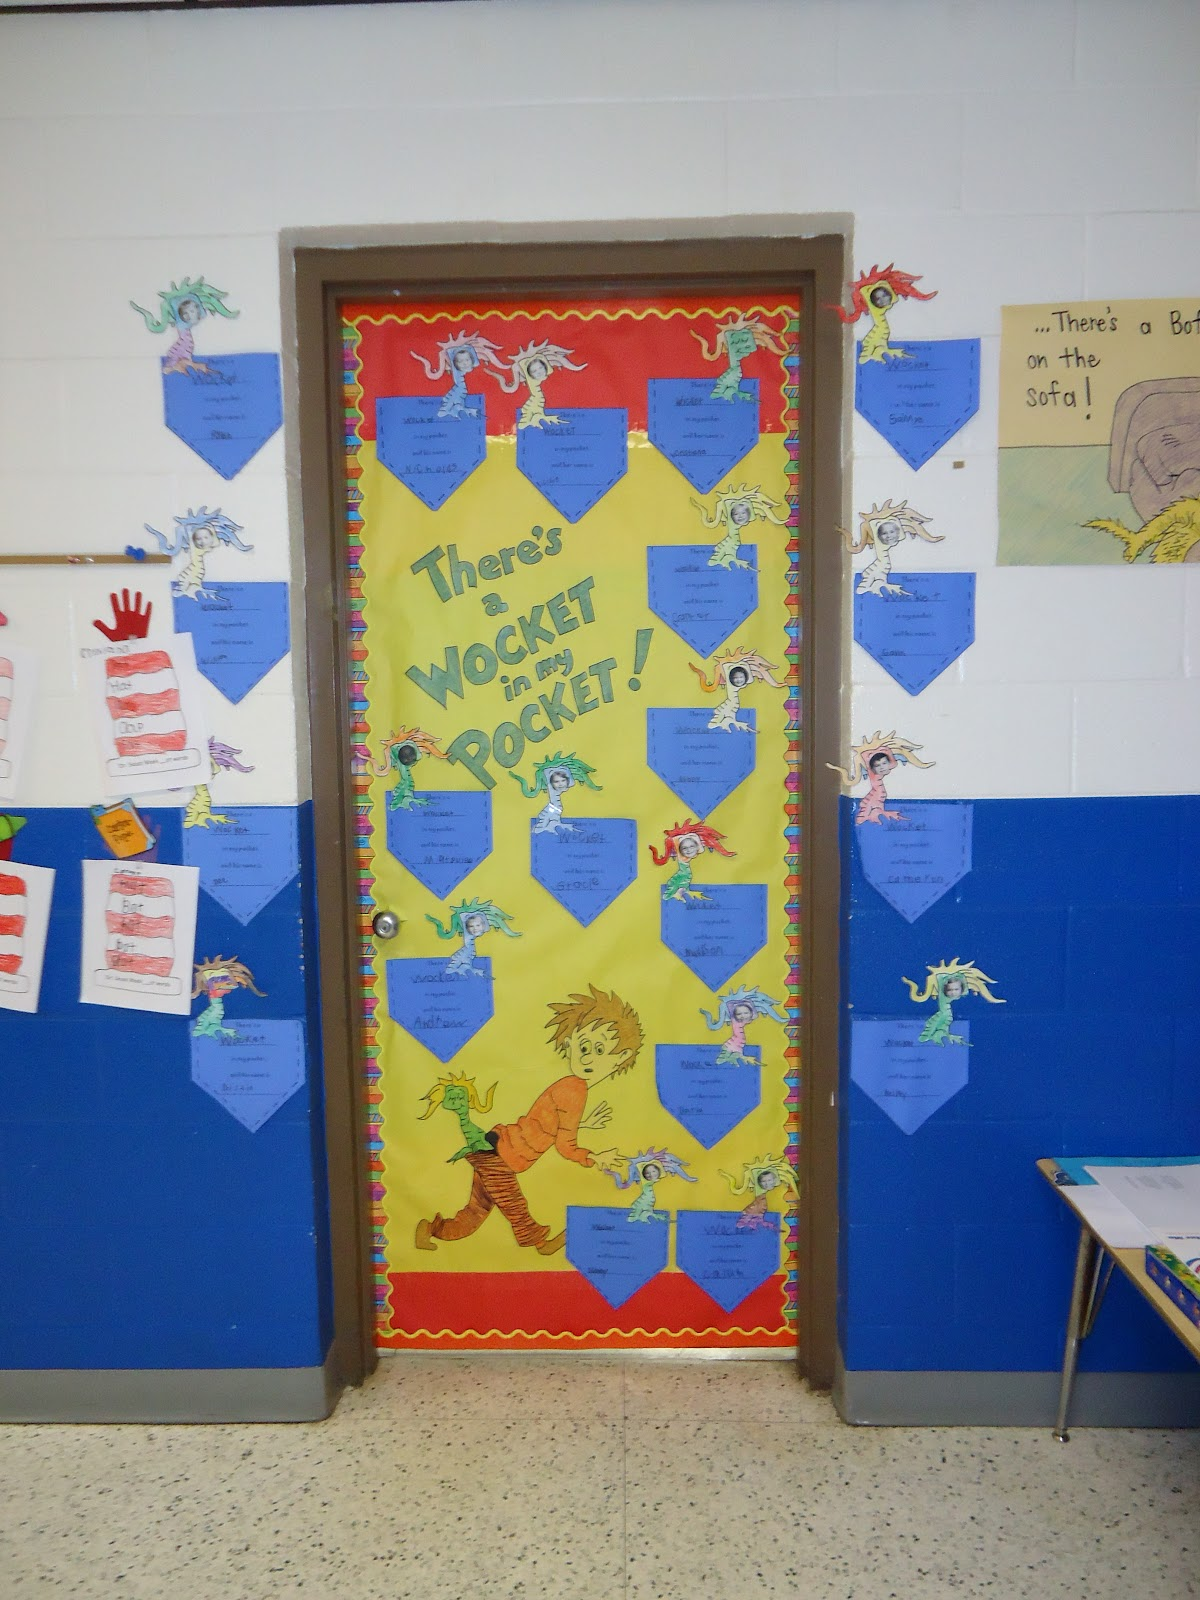 Dr seuss door decorating contest ideas bookshelf for P g class decoration